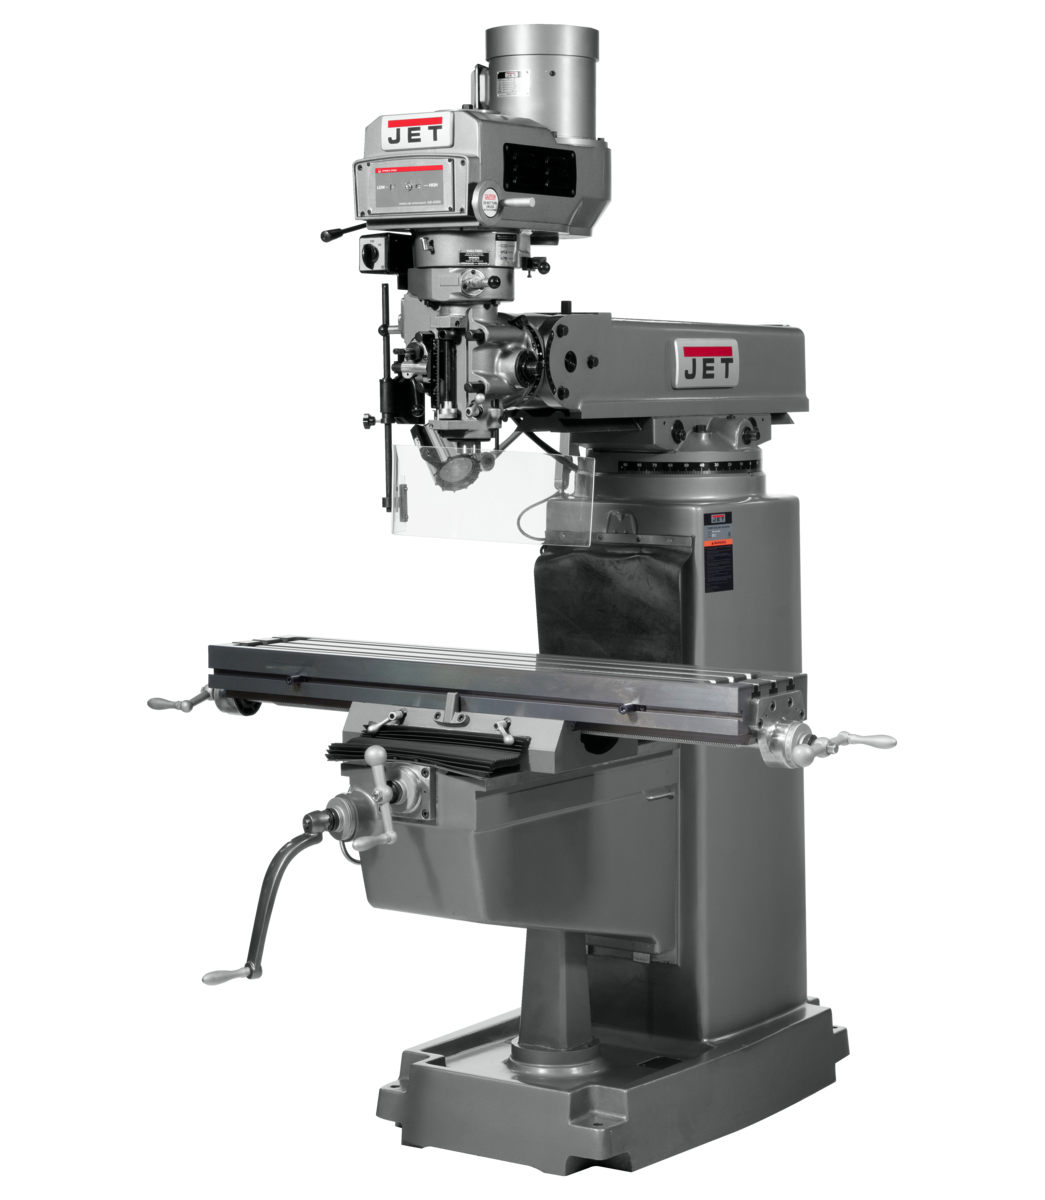 JTM-1050VS2 Mill With ACU-RITE 203 DRO With X, Y and Z-Axis Powerfeeds and Power Draw Bar